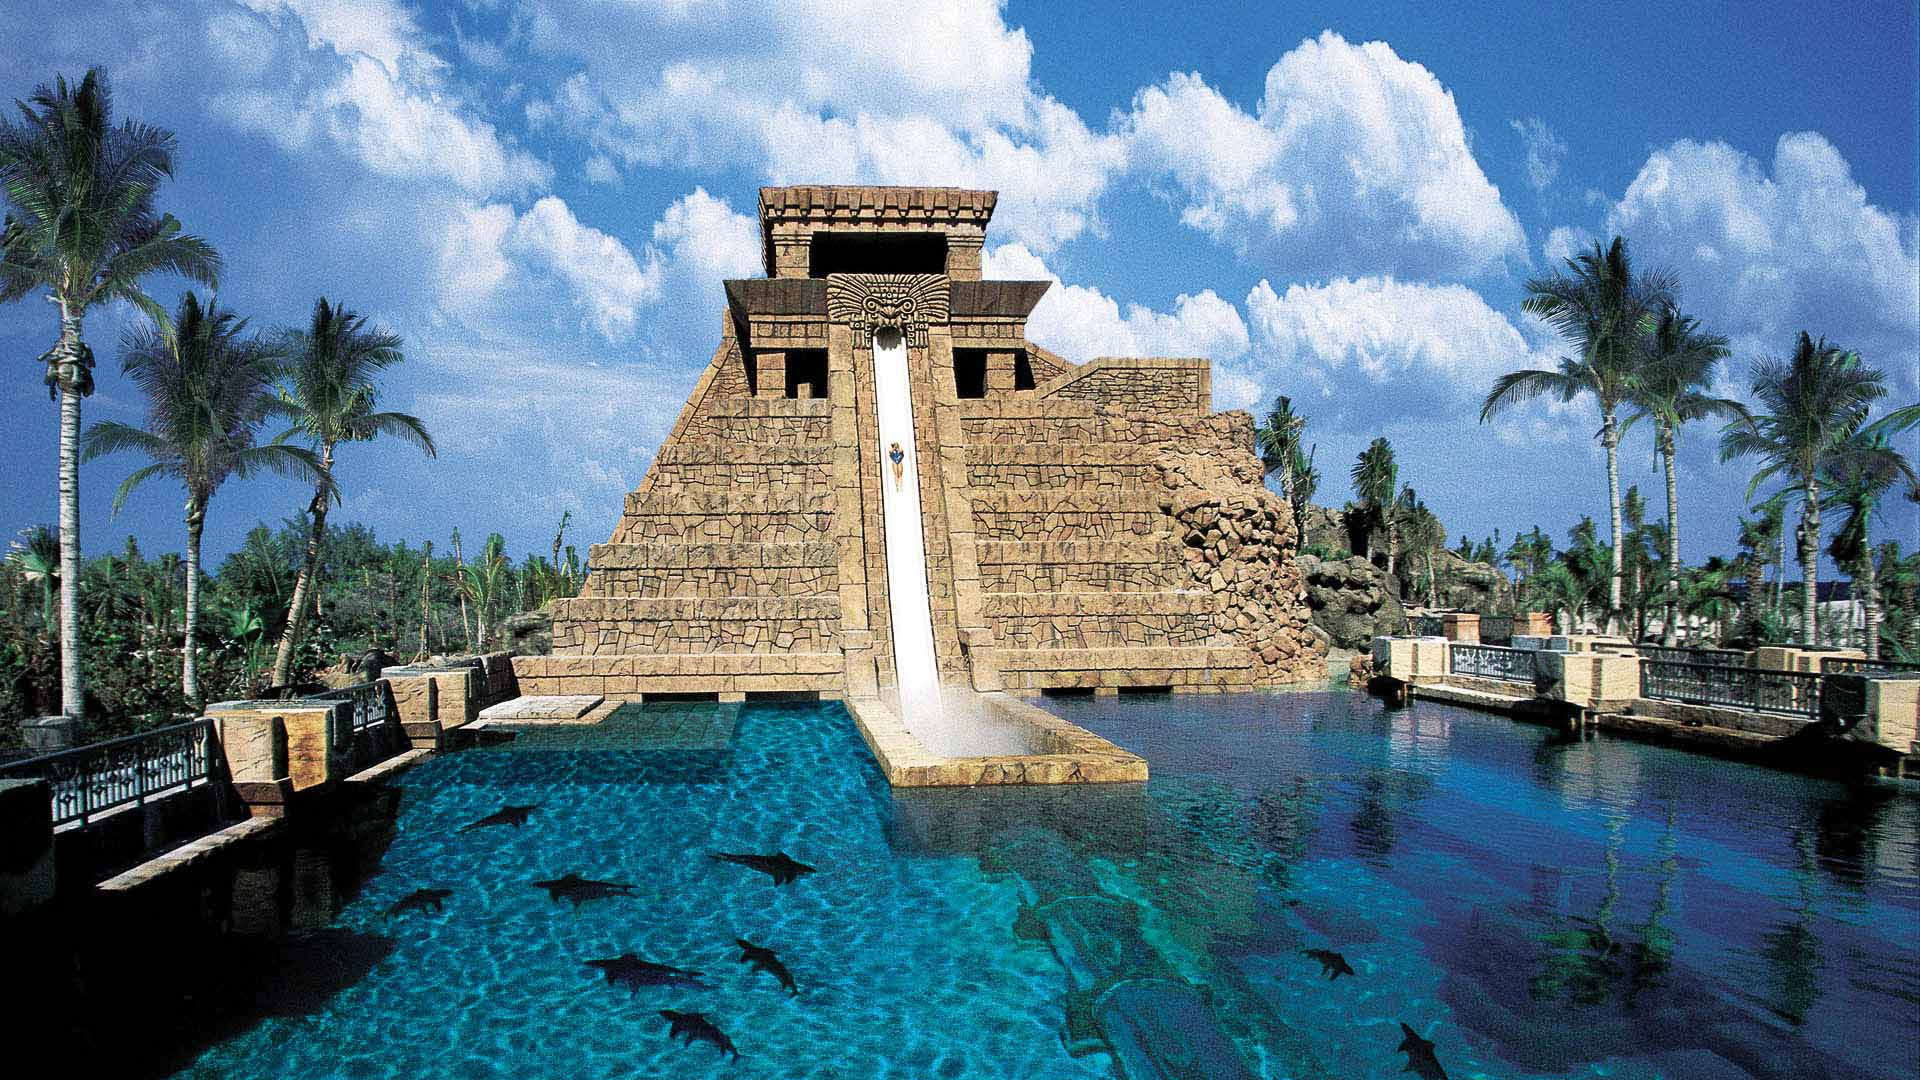 Aquaventure, Leap of Faith, water slide